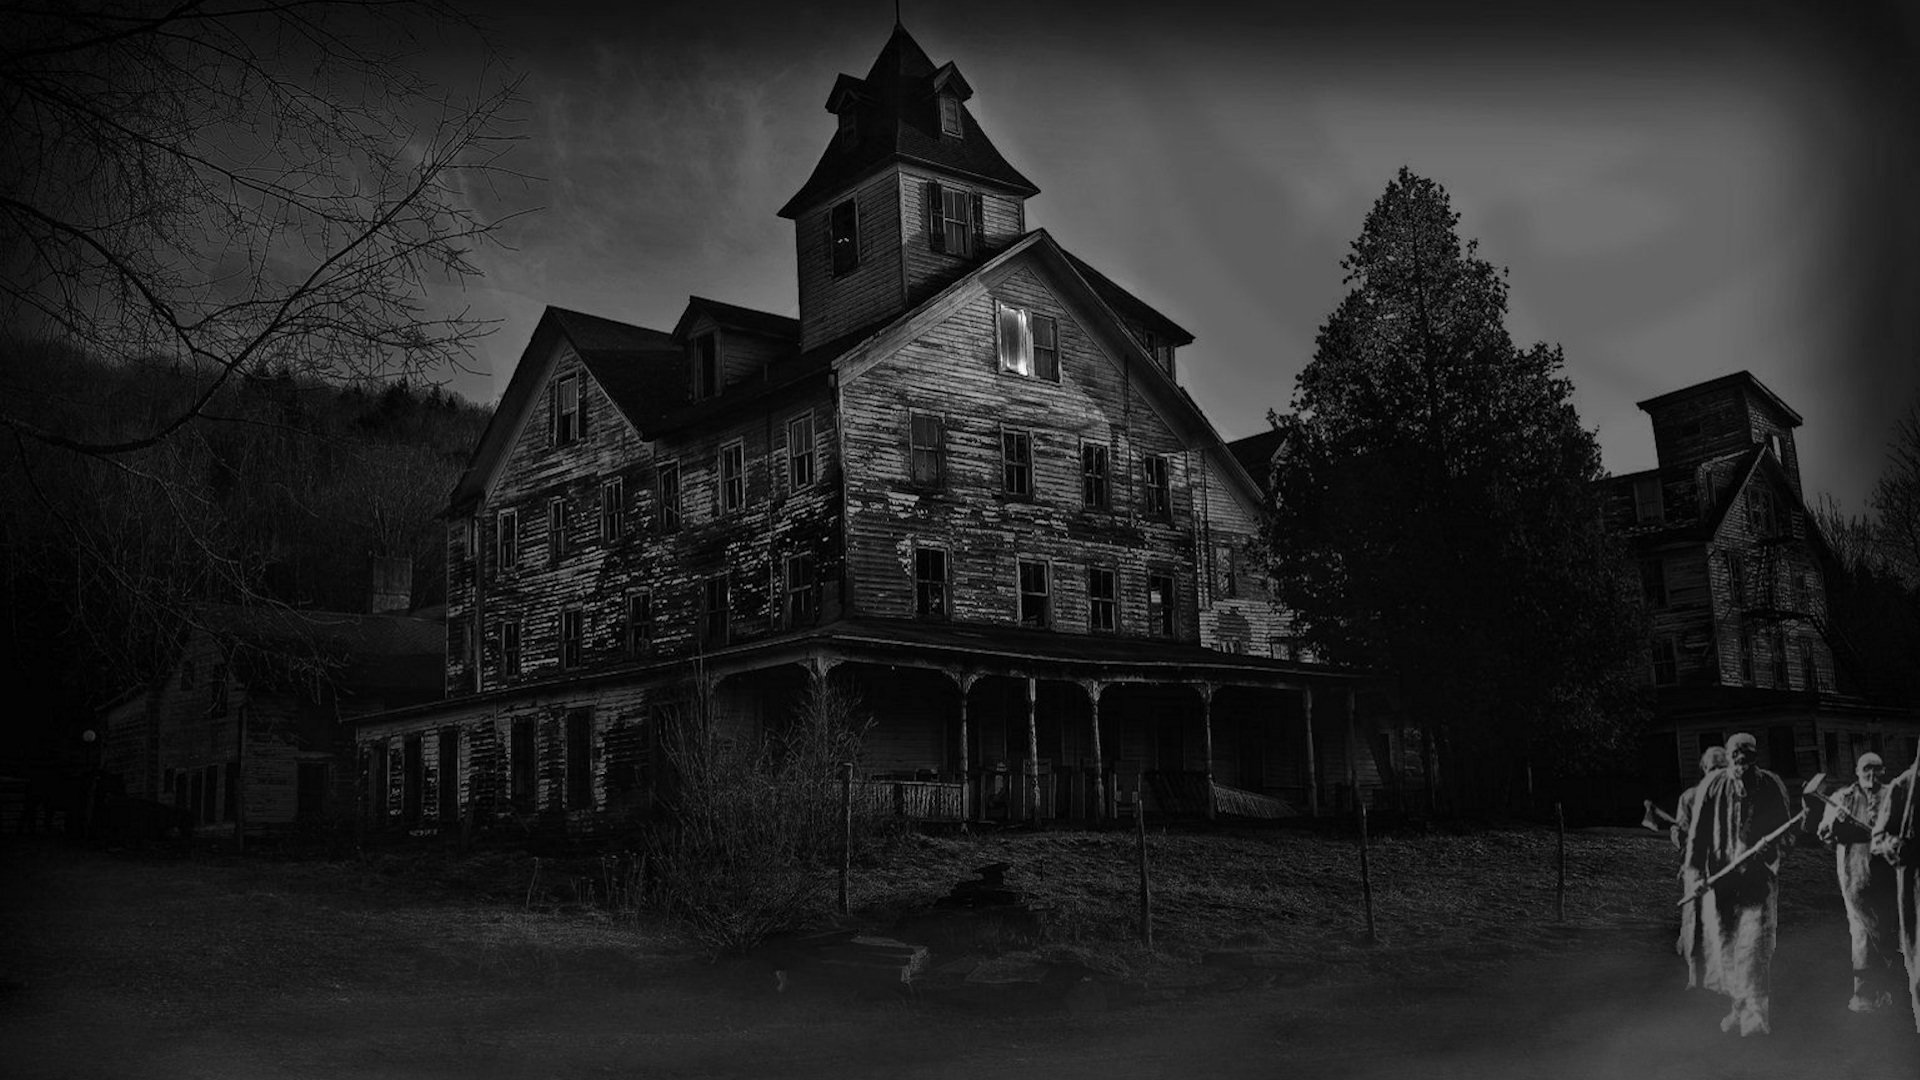 The Haunted House Wallpaper Hd 19201080 21590 HD Wallpaper Res 1920x1080